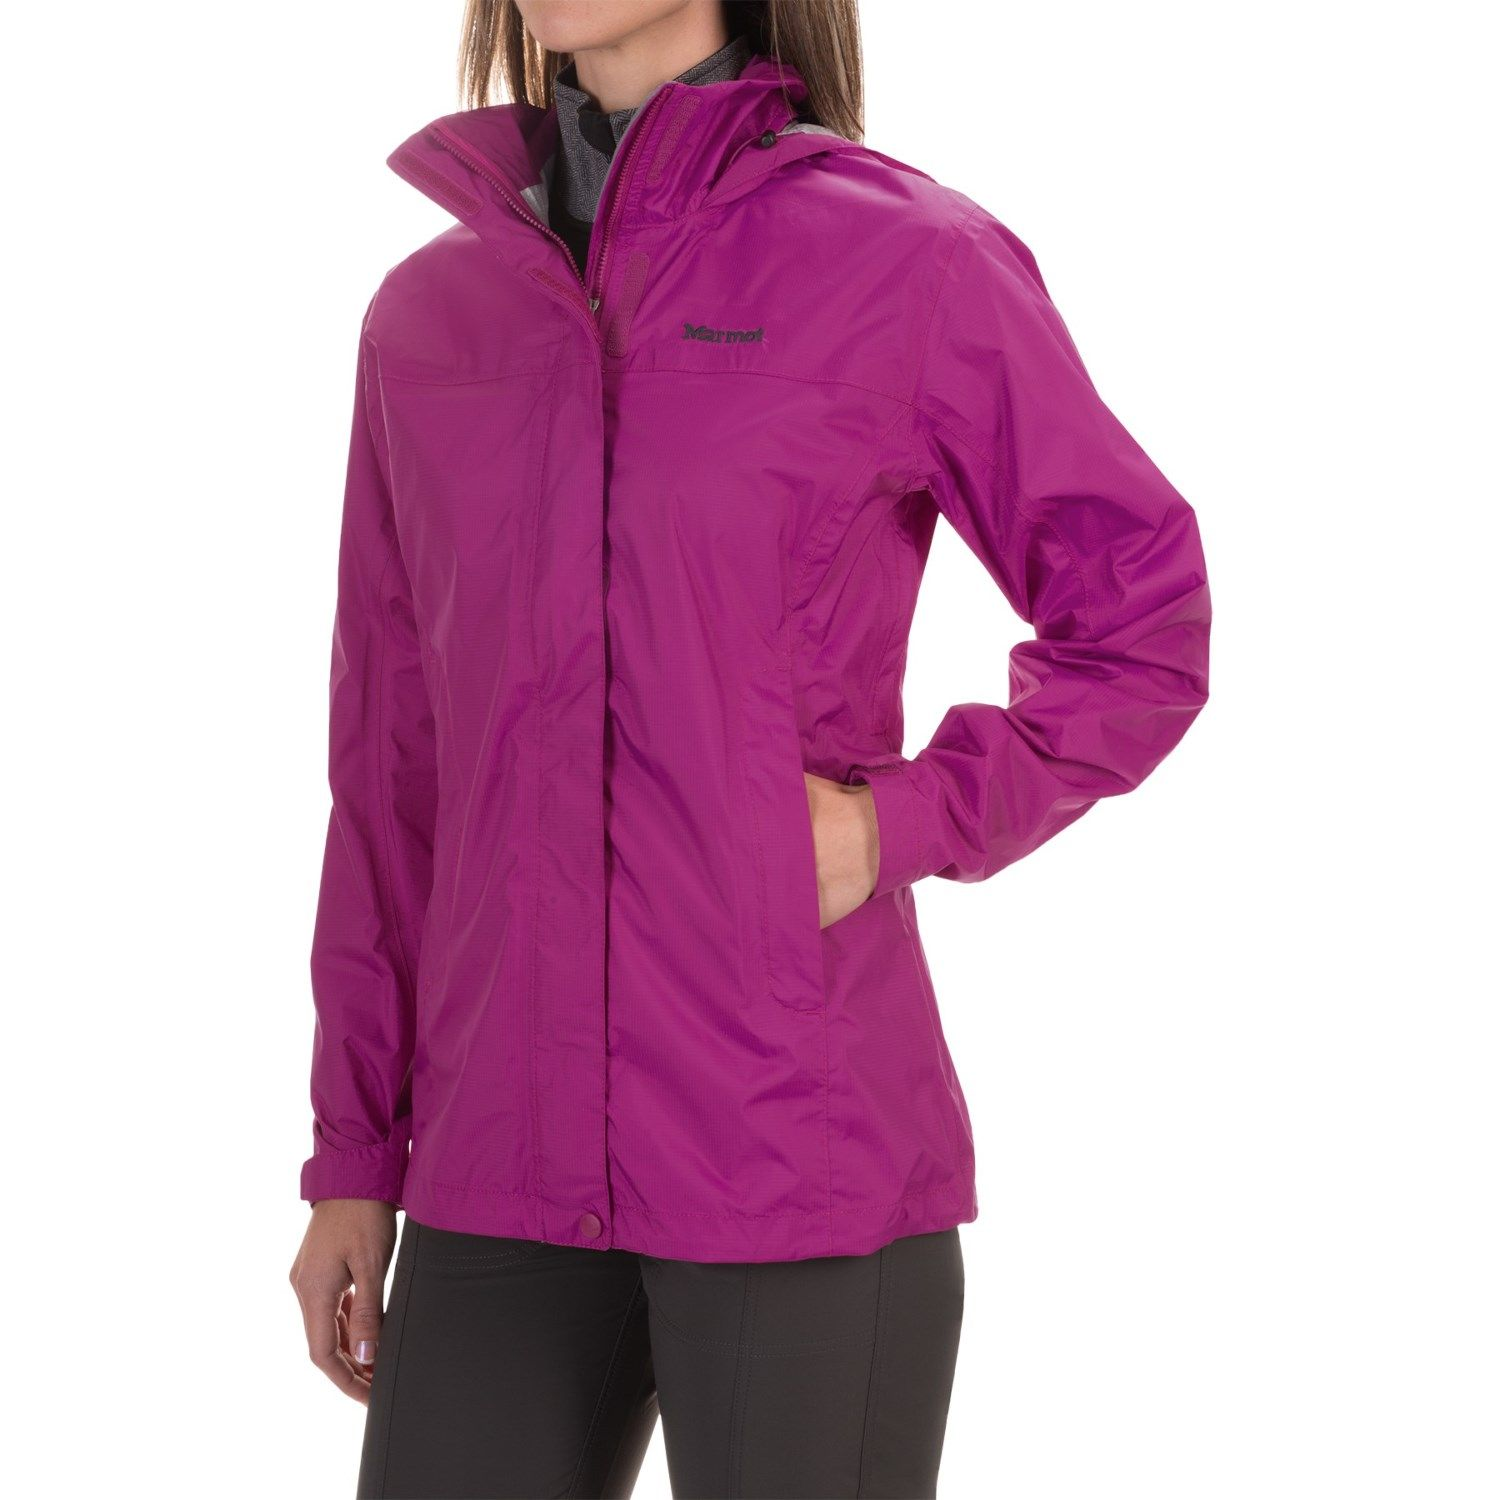 2017 for Women Precip® Waterproof Peru Jacket Marmot YqHtwAq